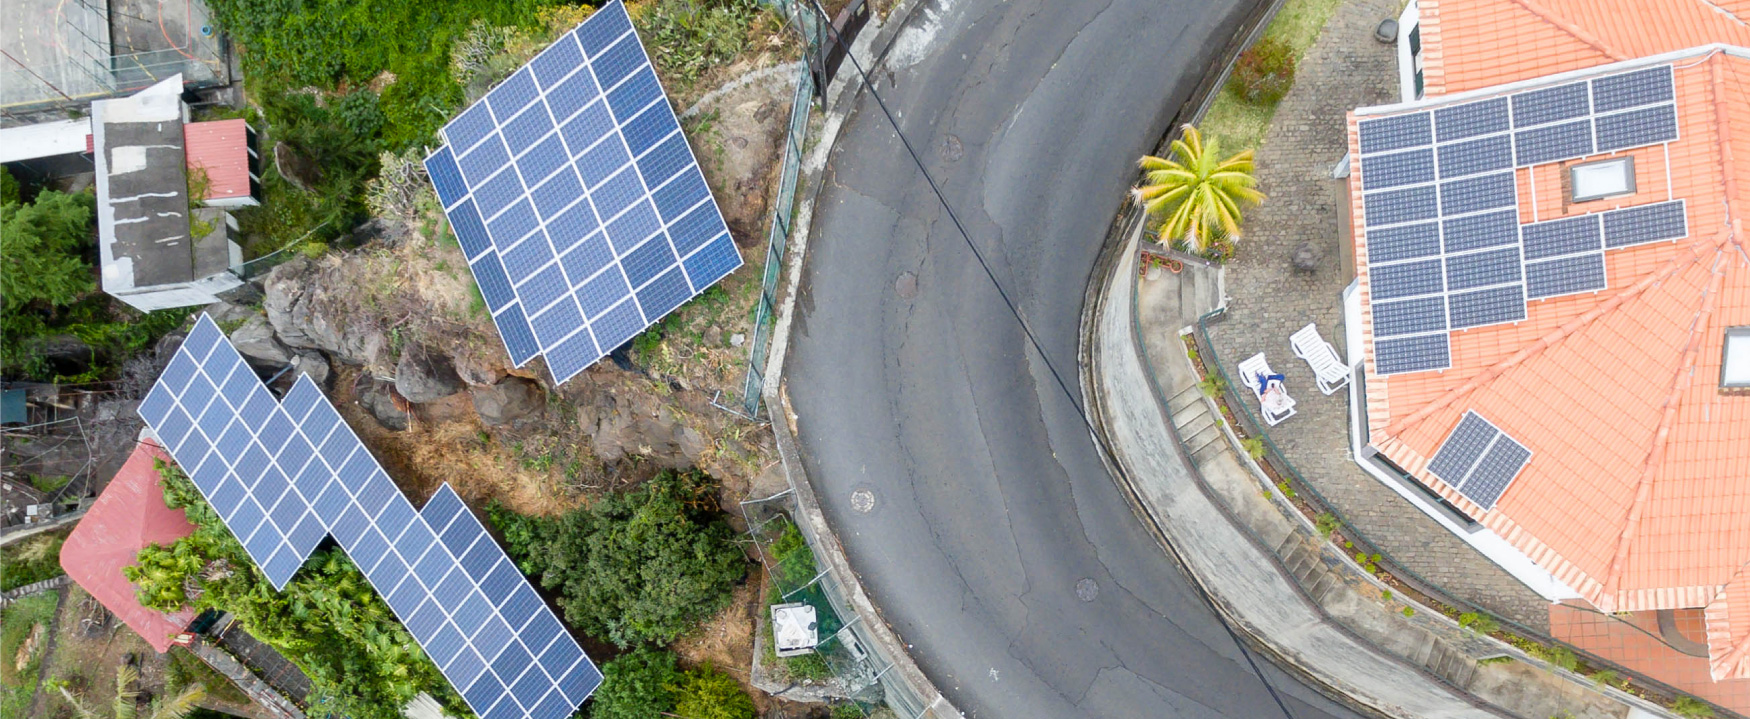 An aerial photograph shows houses on a tropical hillside with solar panels on their roofs.